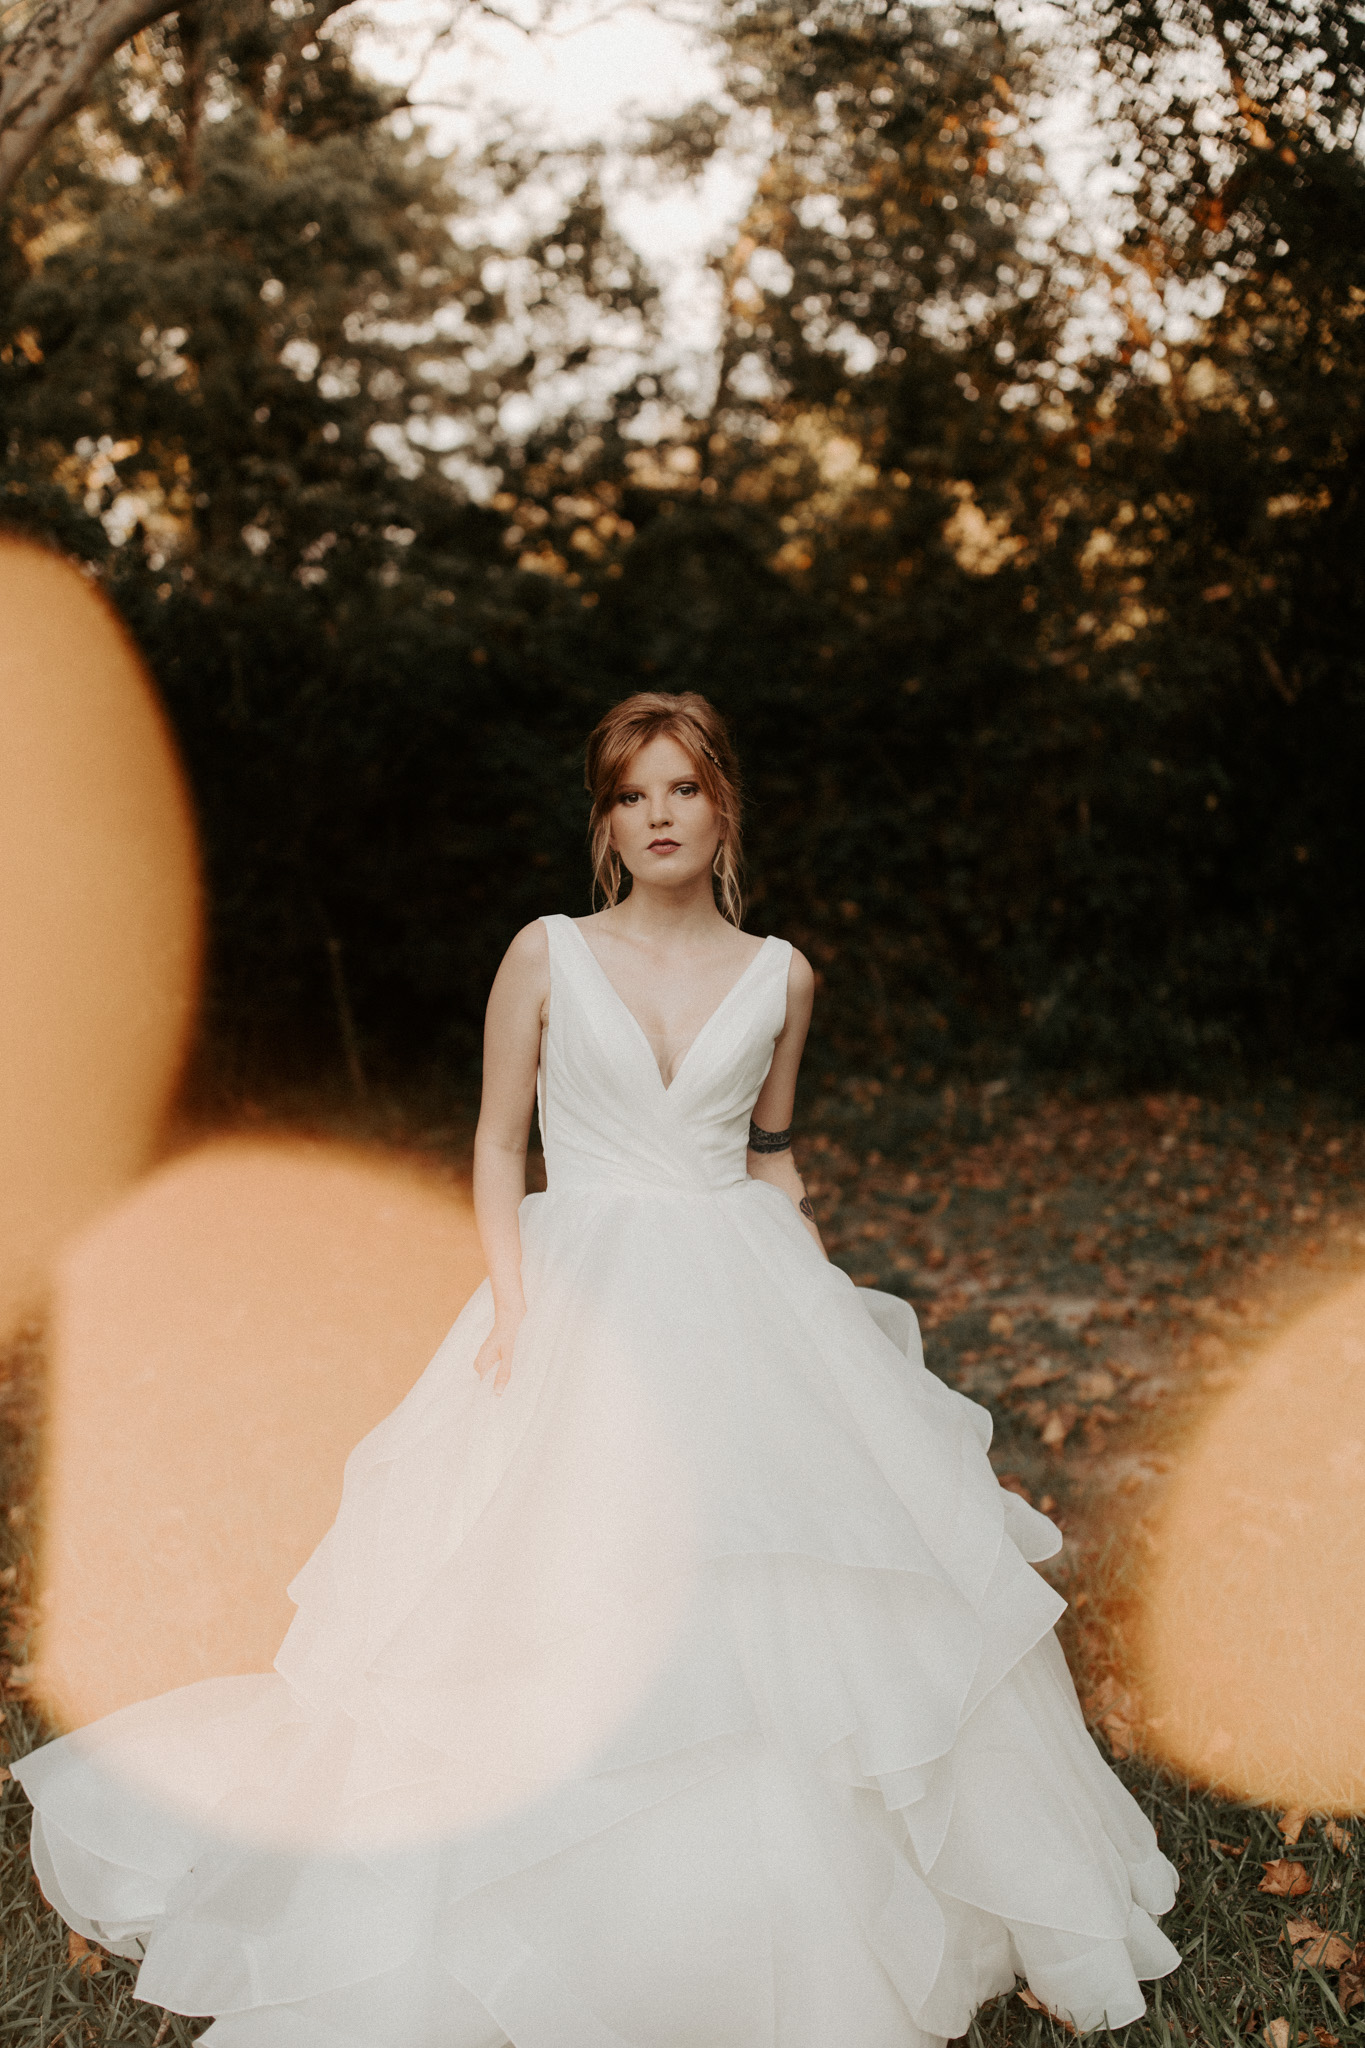 Moody, Autumn Bridal Inspiration with Non Traditional Details   New Orleans Wedding Photography